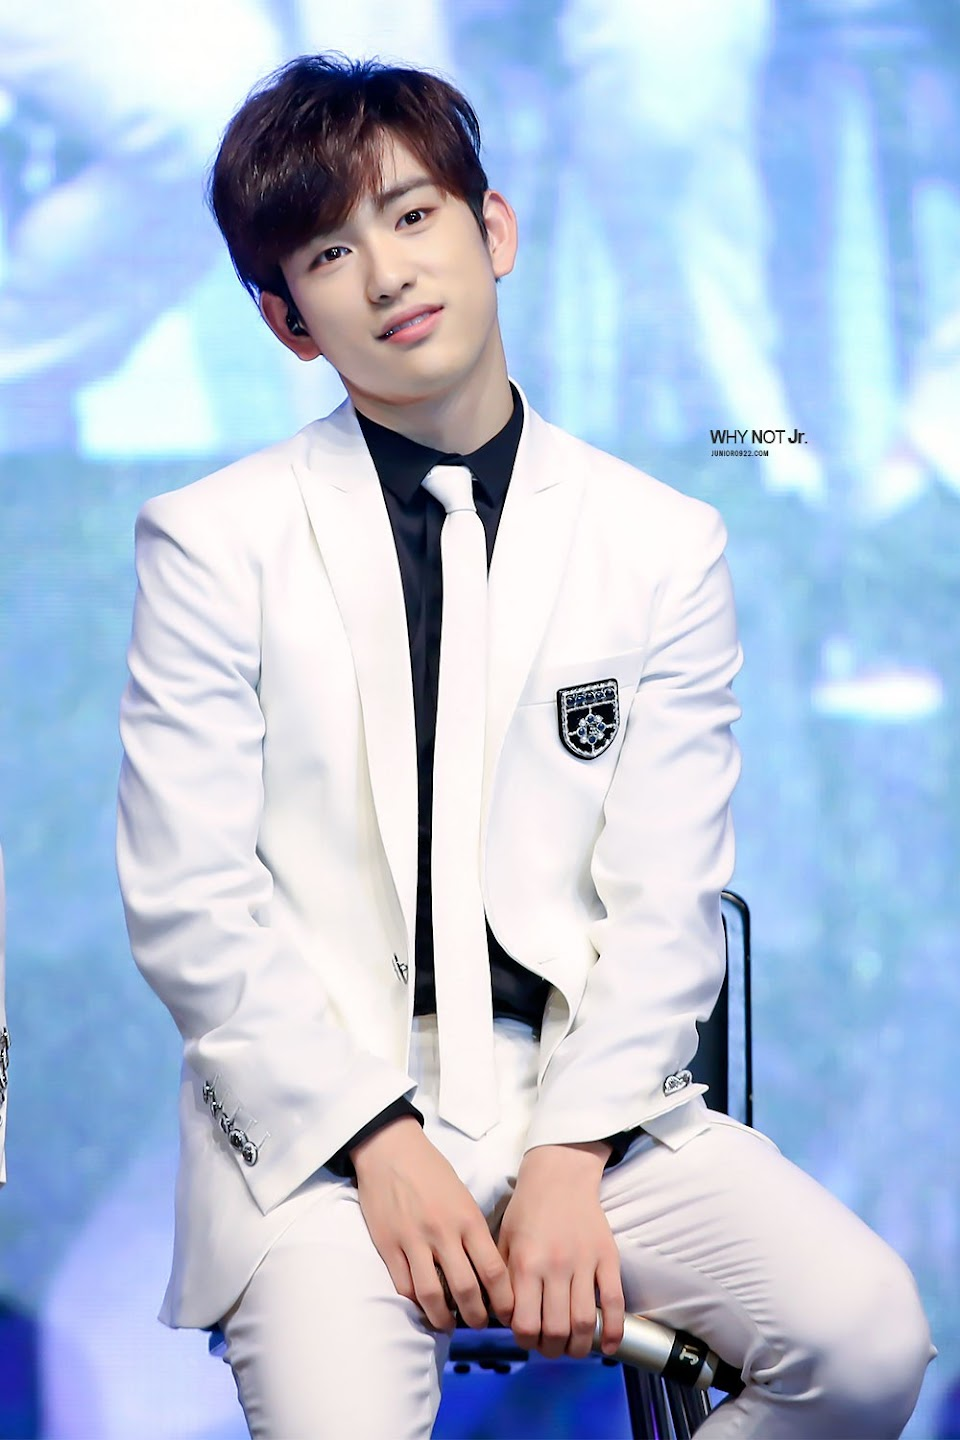 jinyoungwhite_5a